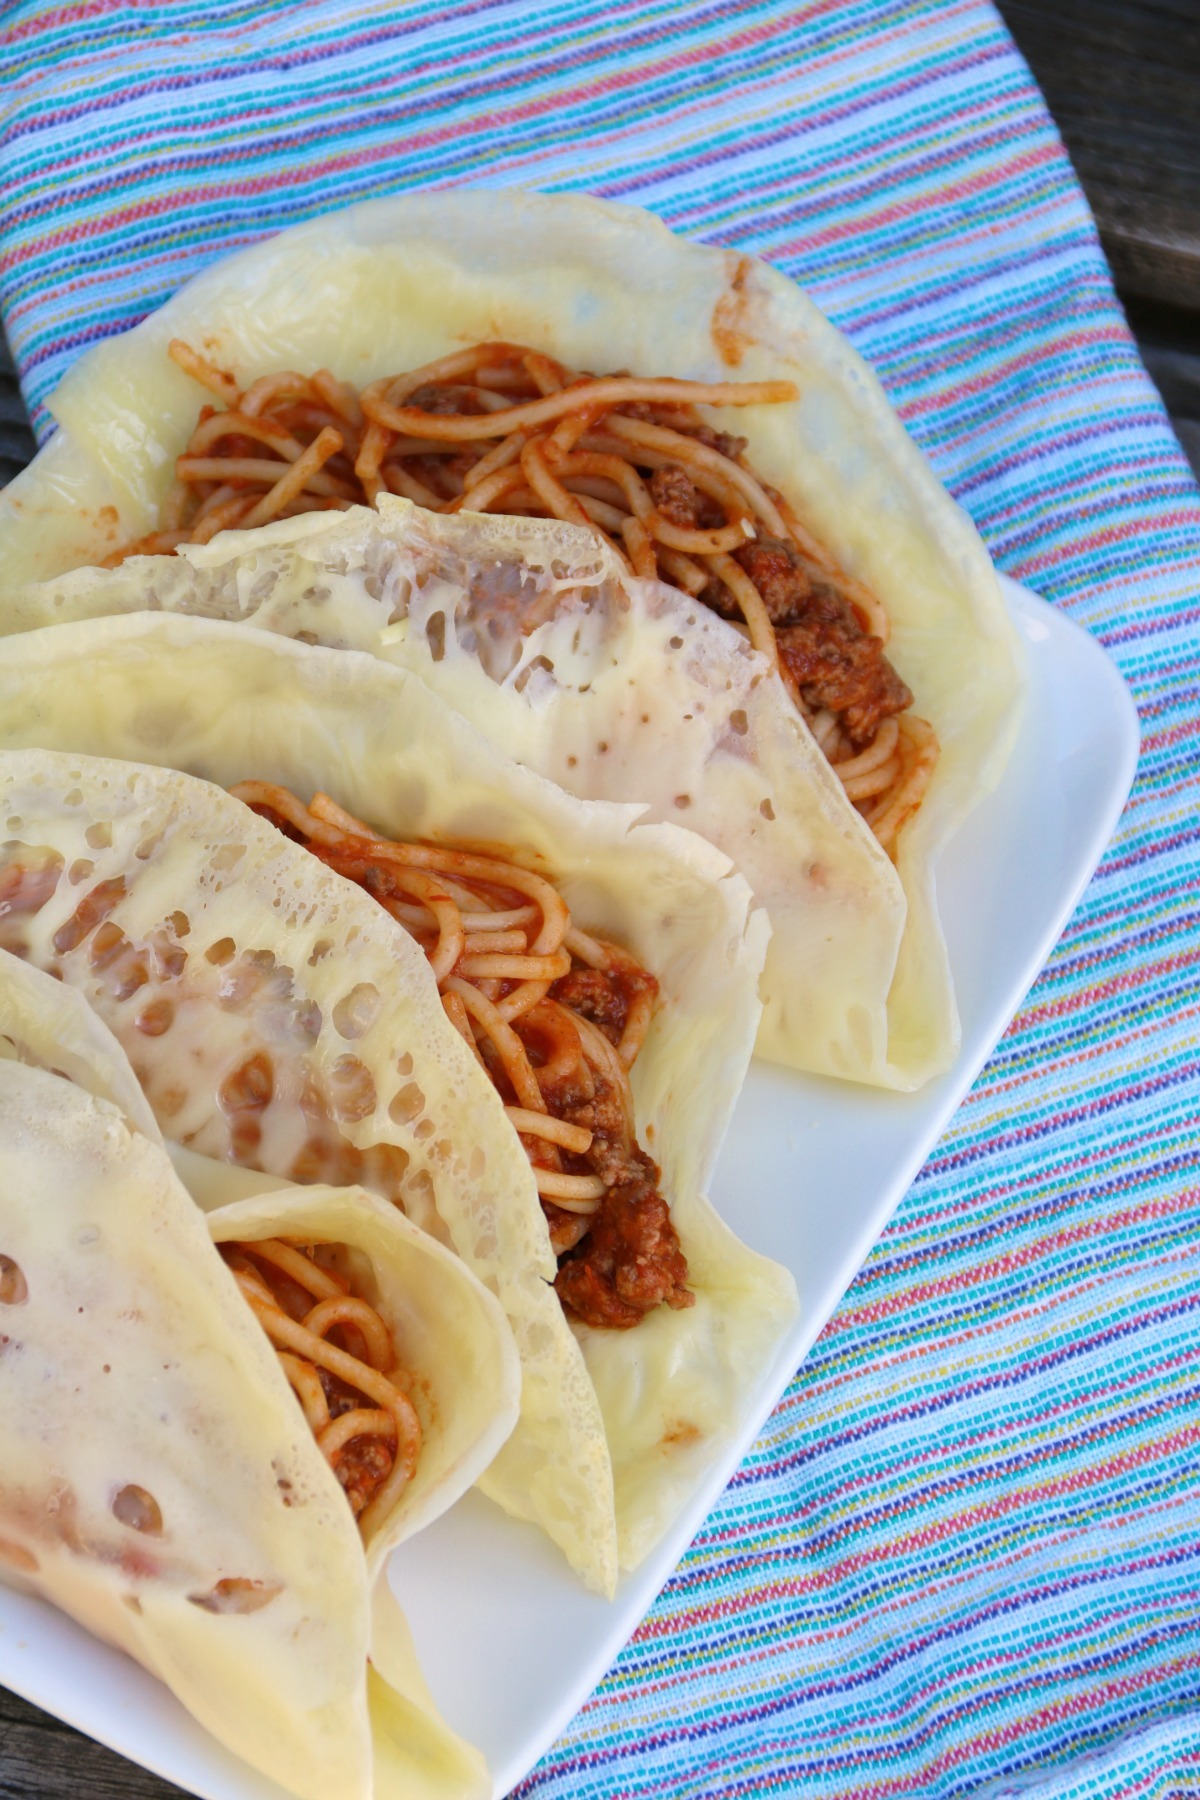 Spaghetti Tacos With Parmesan Shells As Appetizers Or For Dinner